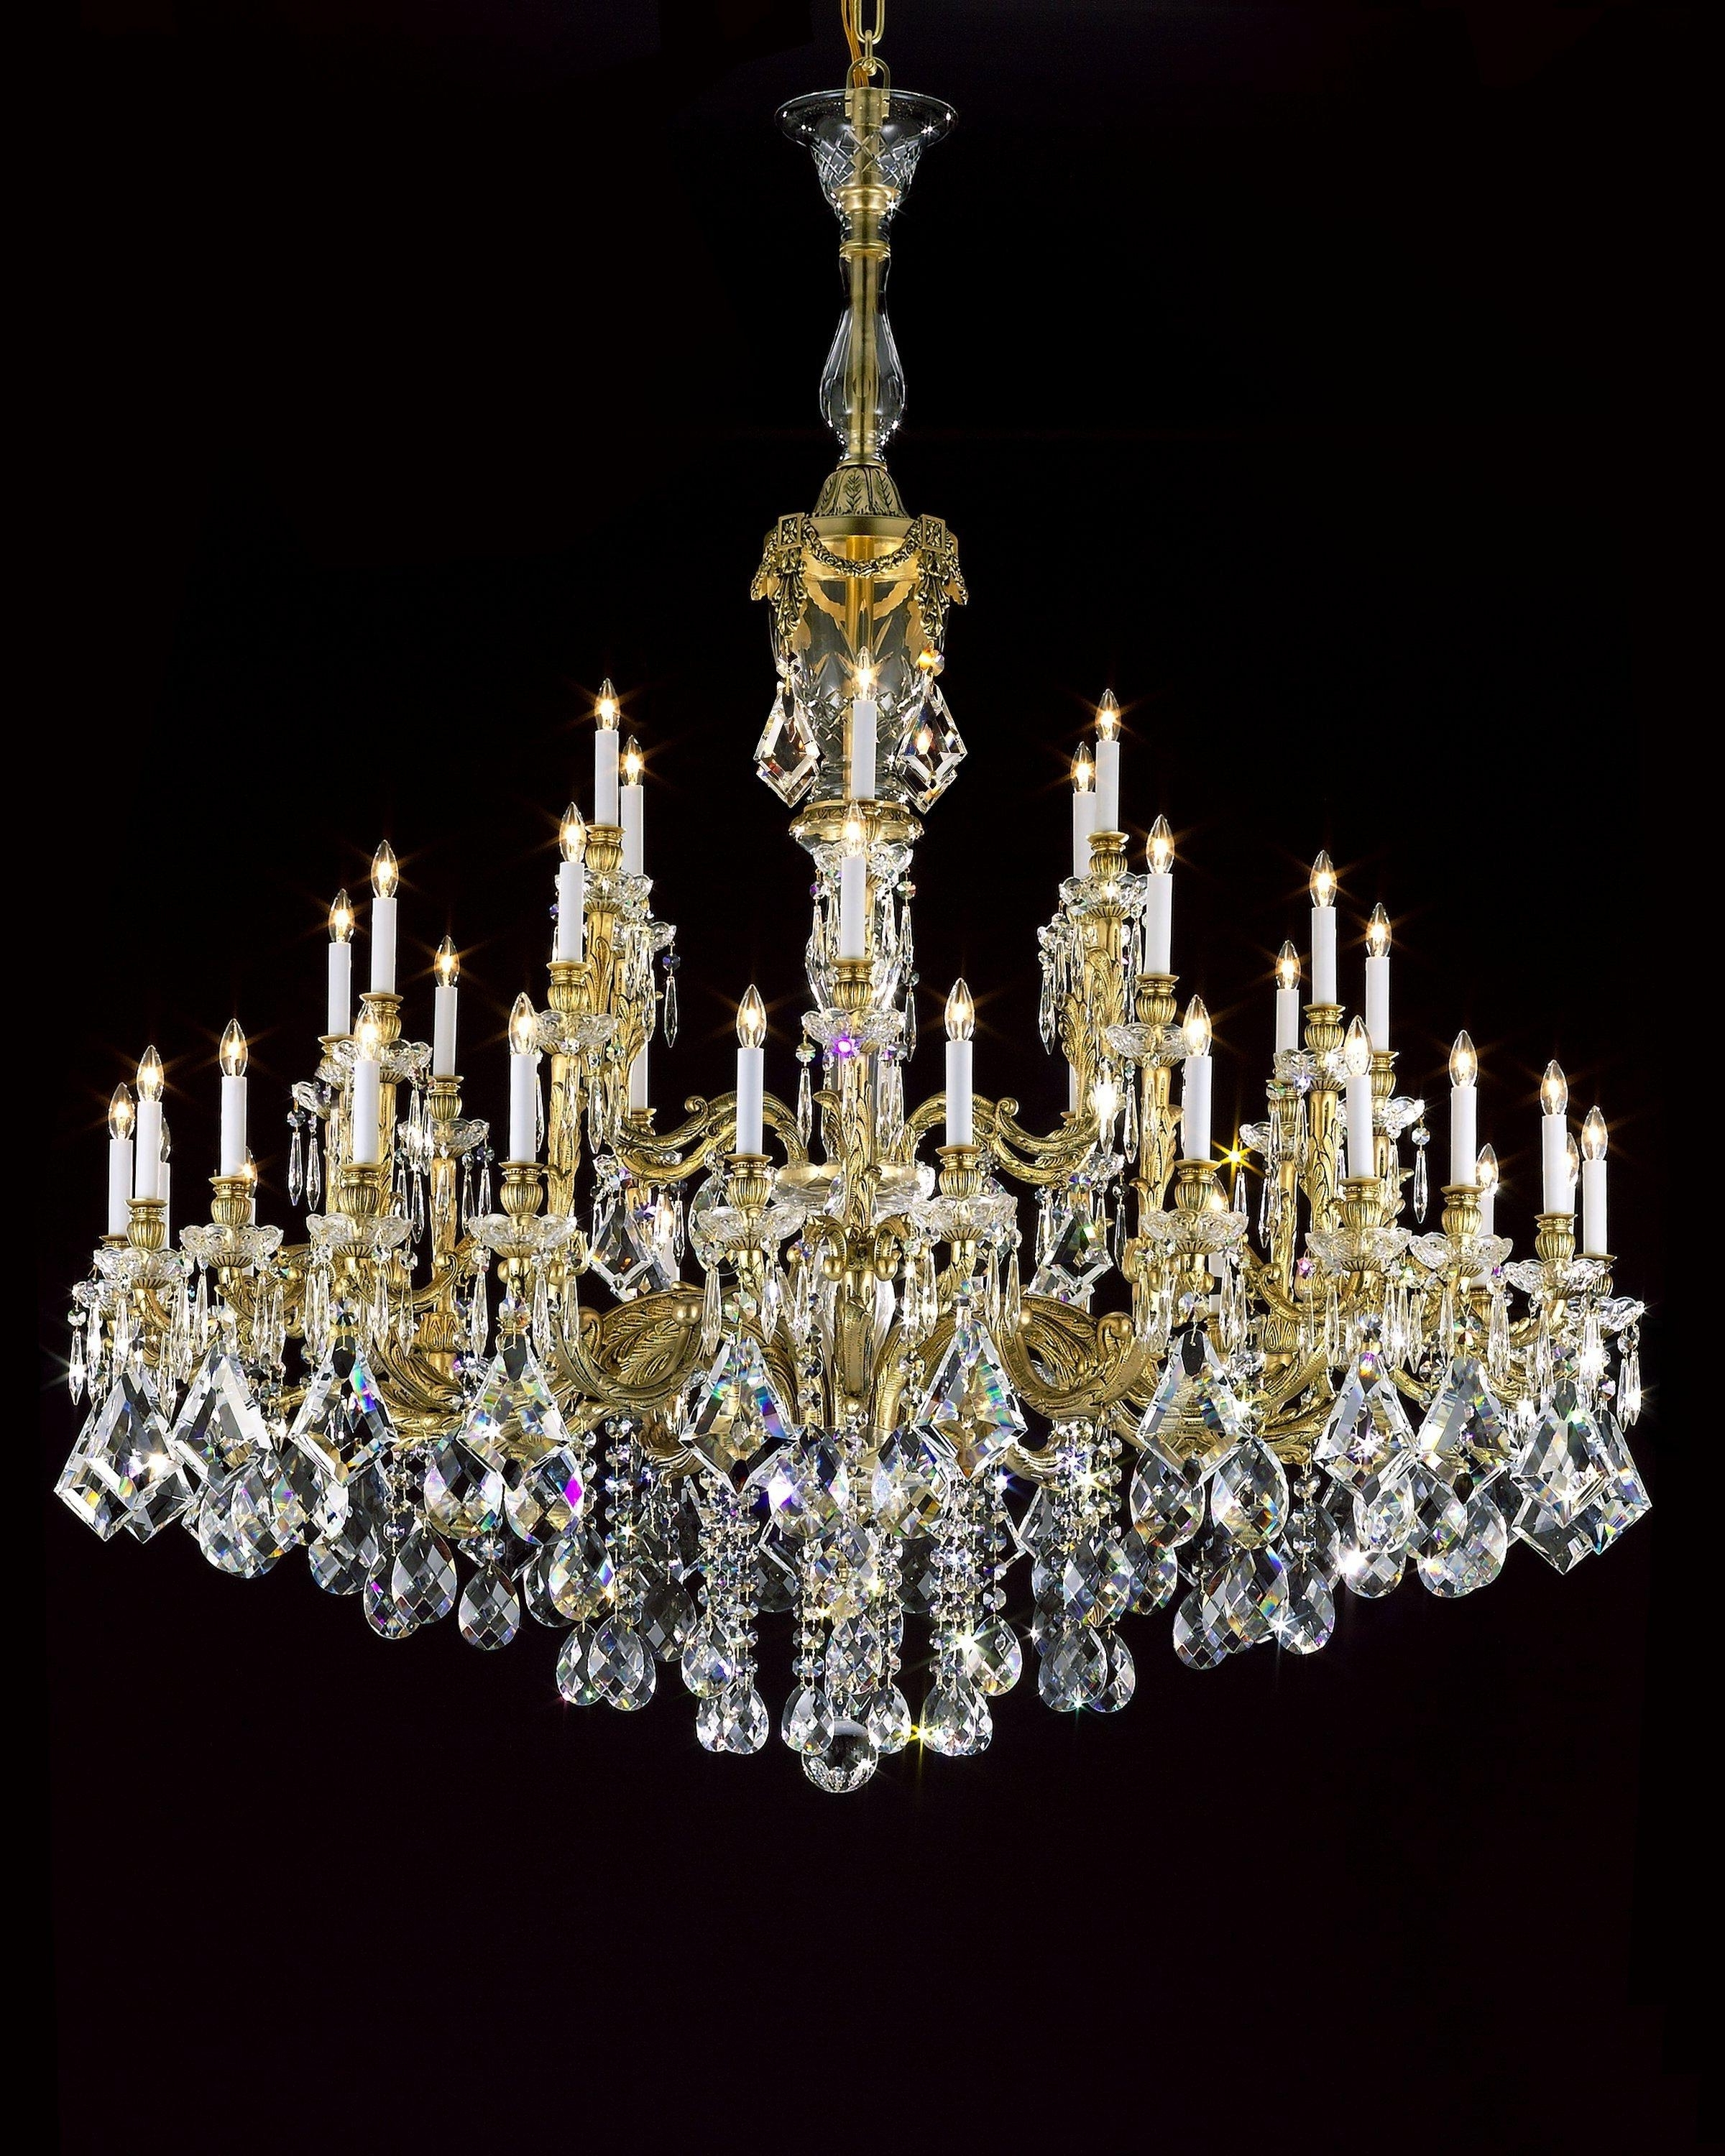 Traditional Chandeliers Regarding Widely Used Chandeliers : Traditional Chandeliers Inspirational Grand Chandelier (View 19 of 20)